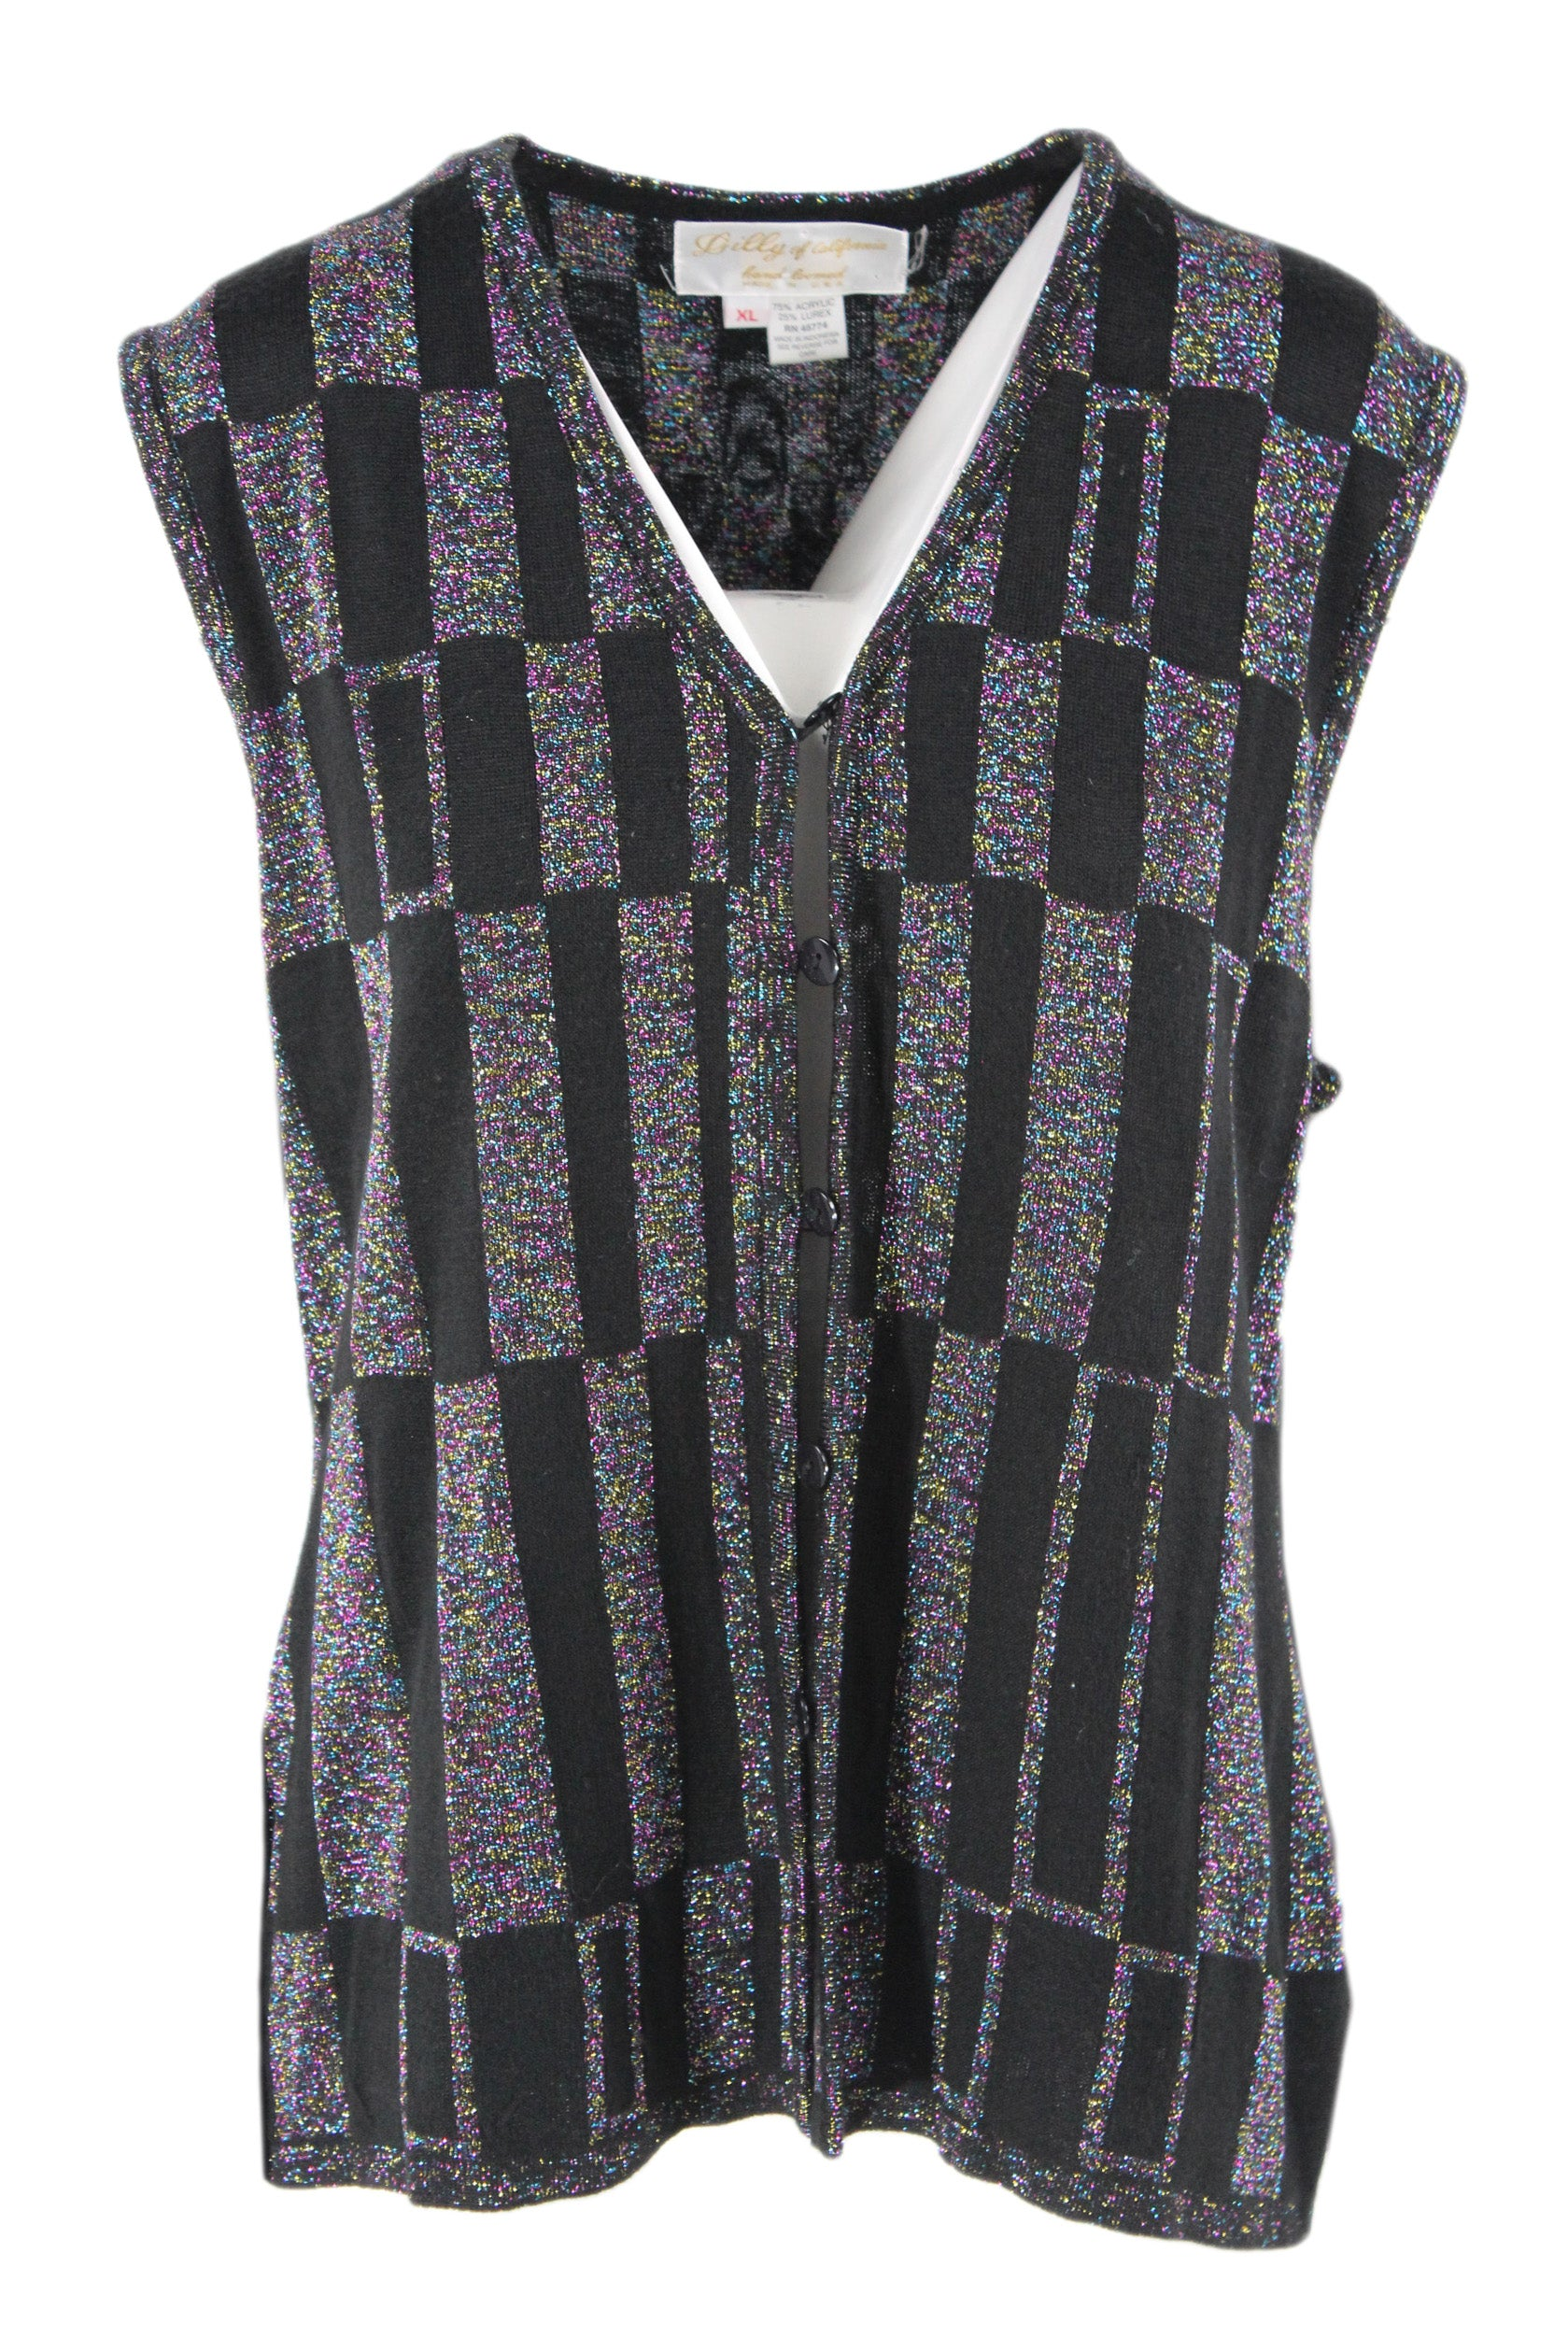 vintage black and metallic rainbow sweater vest. featuring a hand-loomed checkered design.